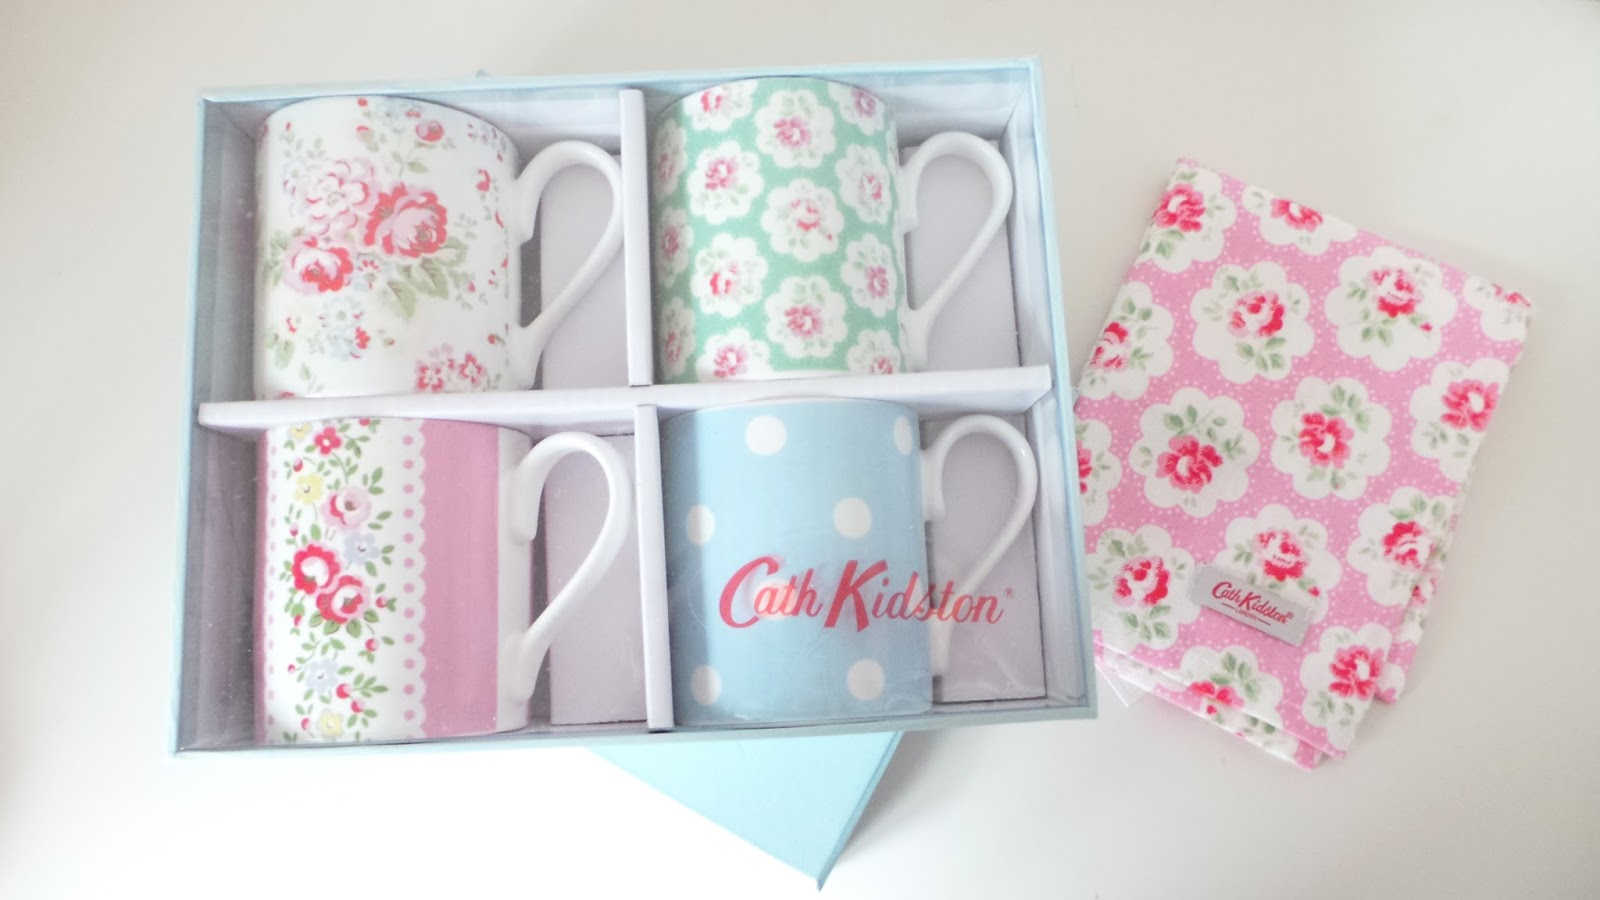 Laura's All Made Up - Home Haul - Cath Kidston haul - Cath Kidston Outlet Buys - Assorted Mug Set - Tea Towel